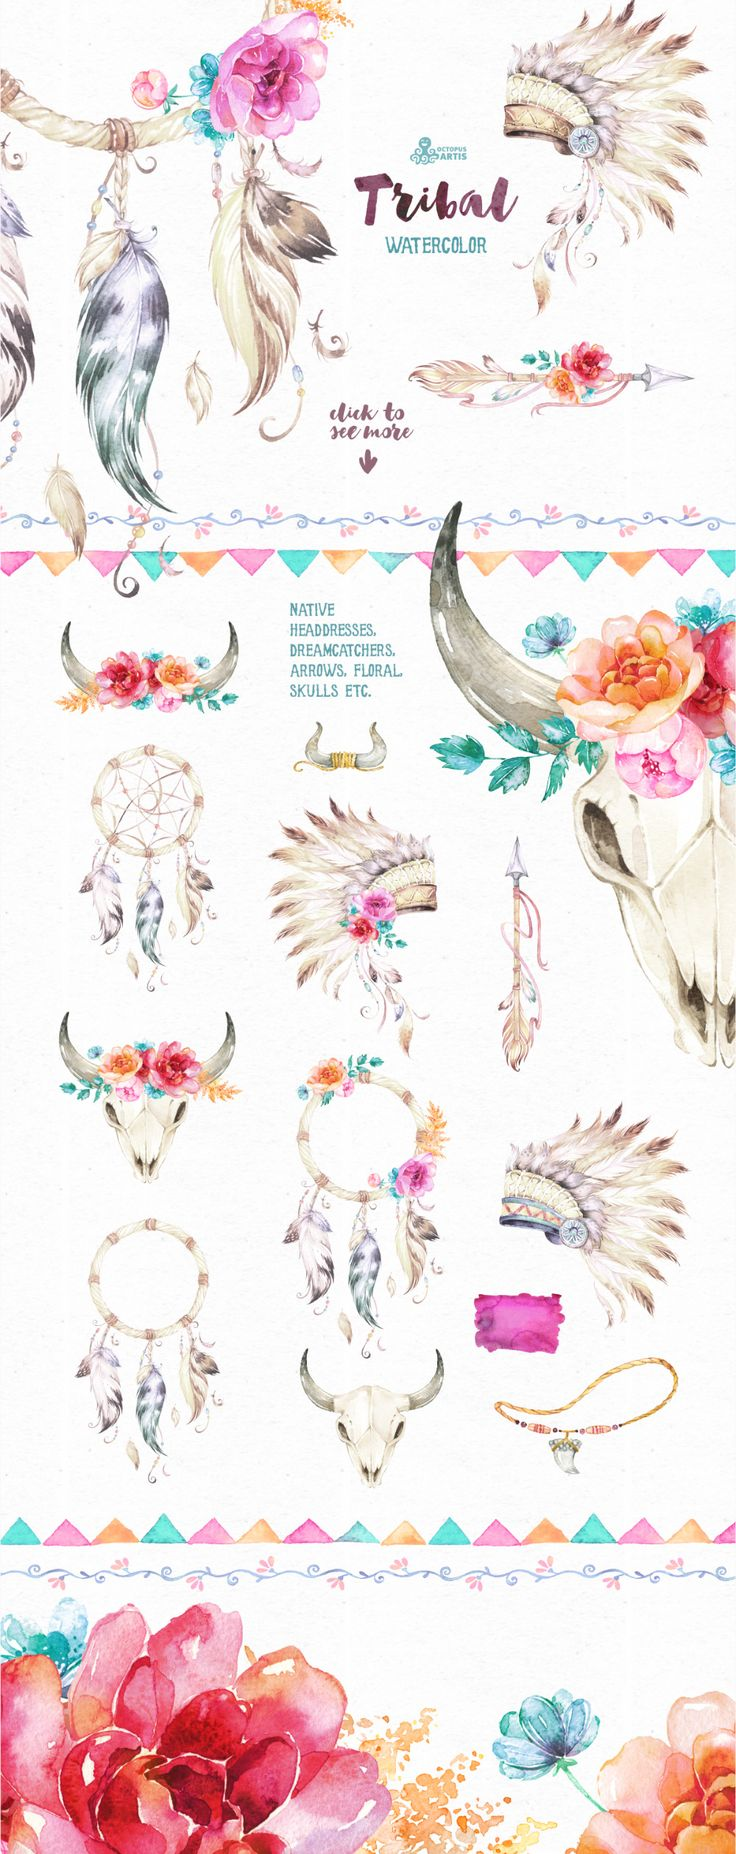 Tribal. Watercolor collection by OctopusArtis on @creativemarket